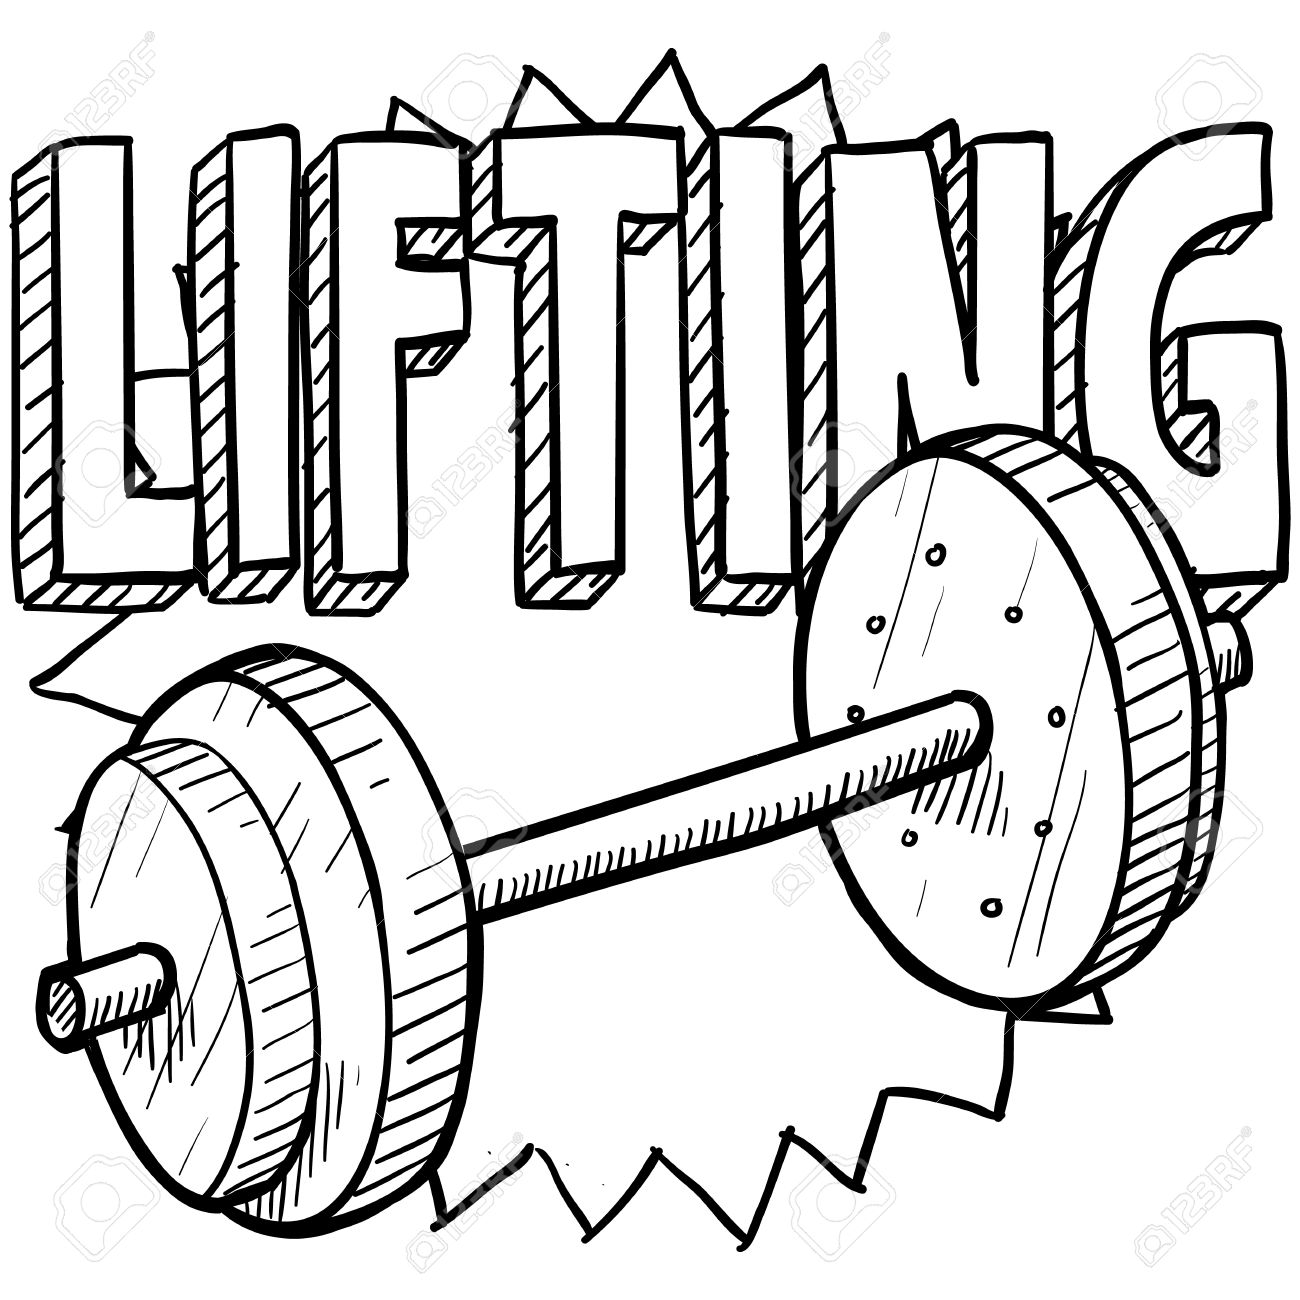 Doodle style weightlifting sports illustration  Includes text and barbells Stock Photo - 18476338